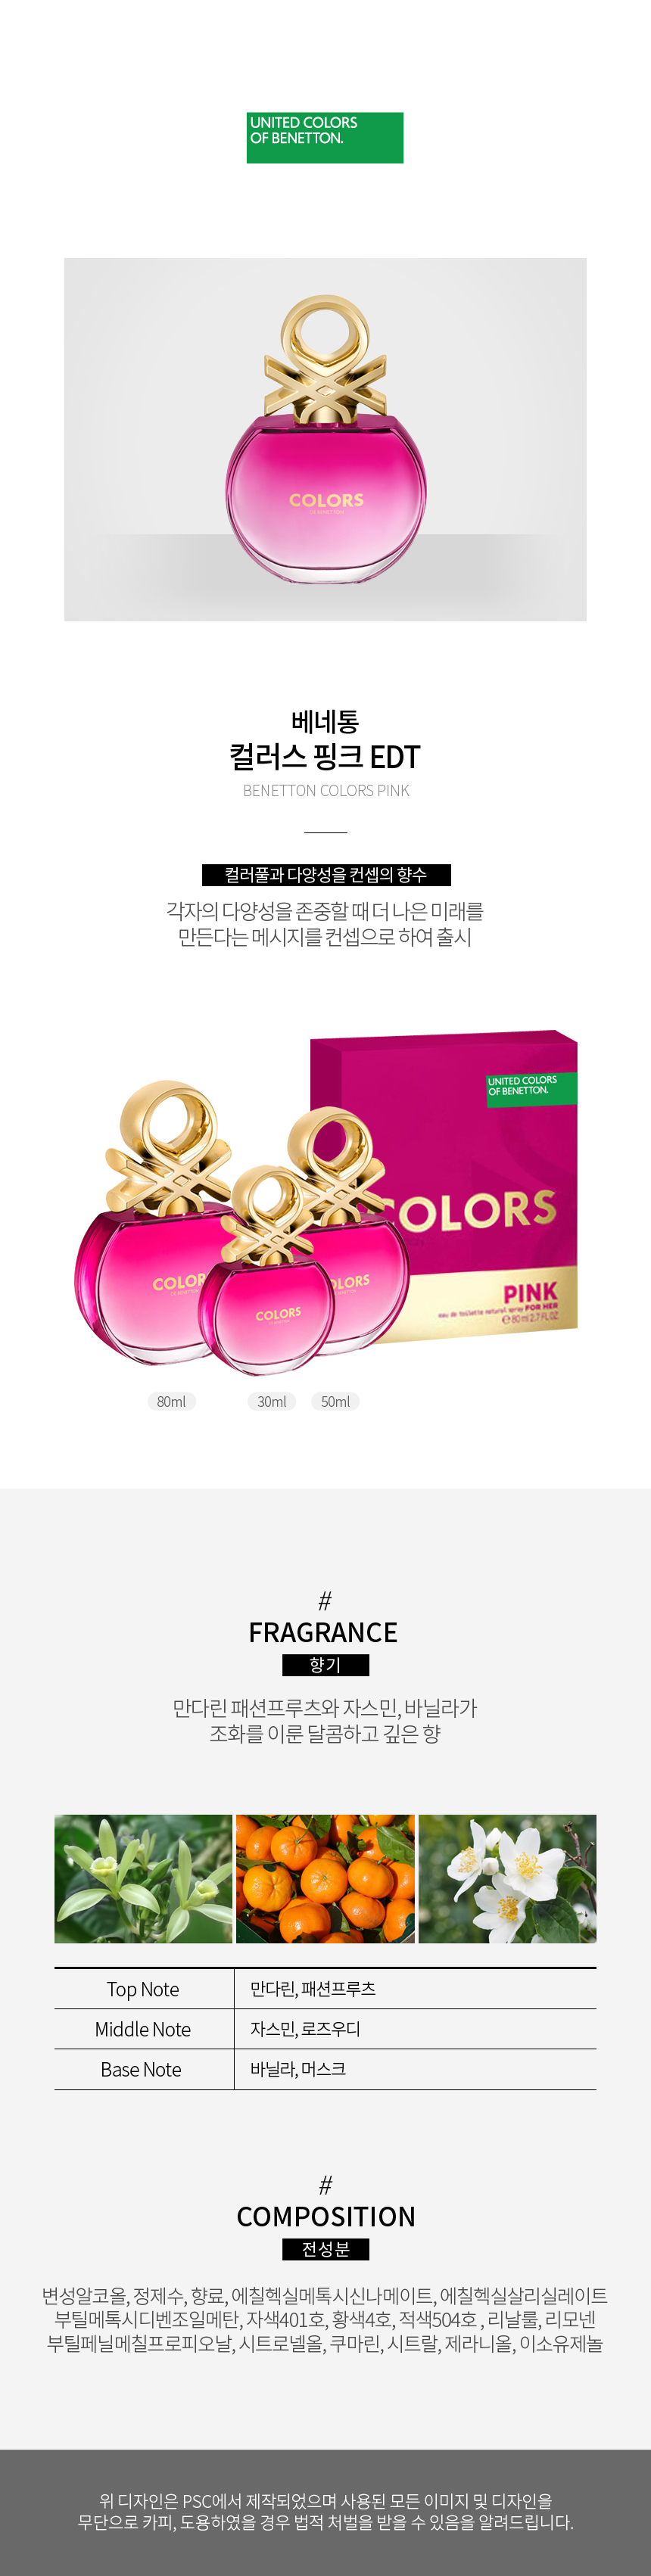 benetton_colors_pink_page.jpg